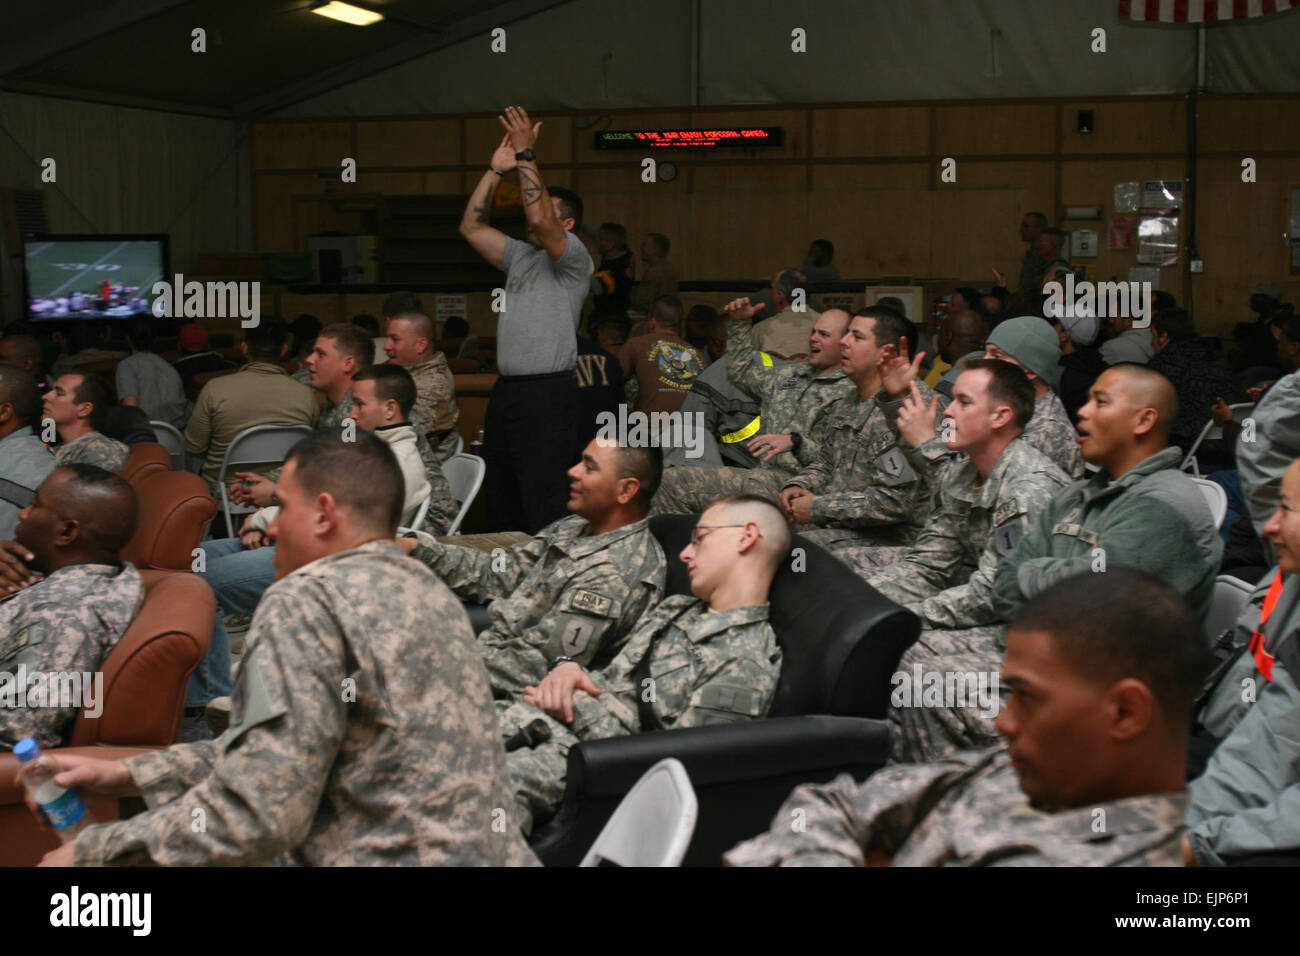 KANDAHAR AIRFIELD, Islamic Republic of Afghanistan – Deployed service members cheer for their favorite teams while - Stock Image